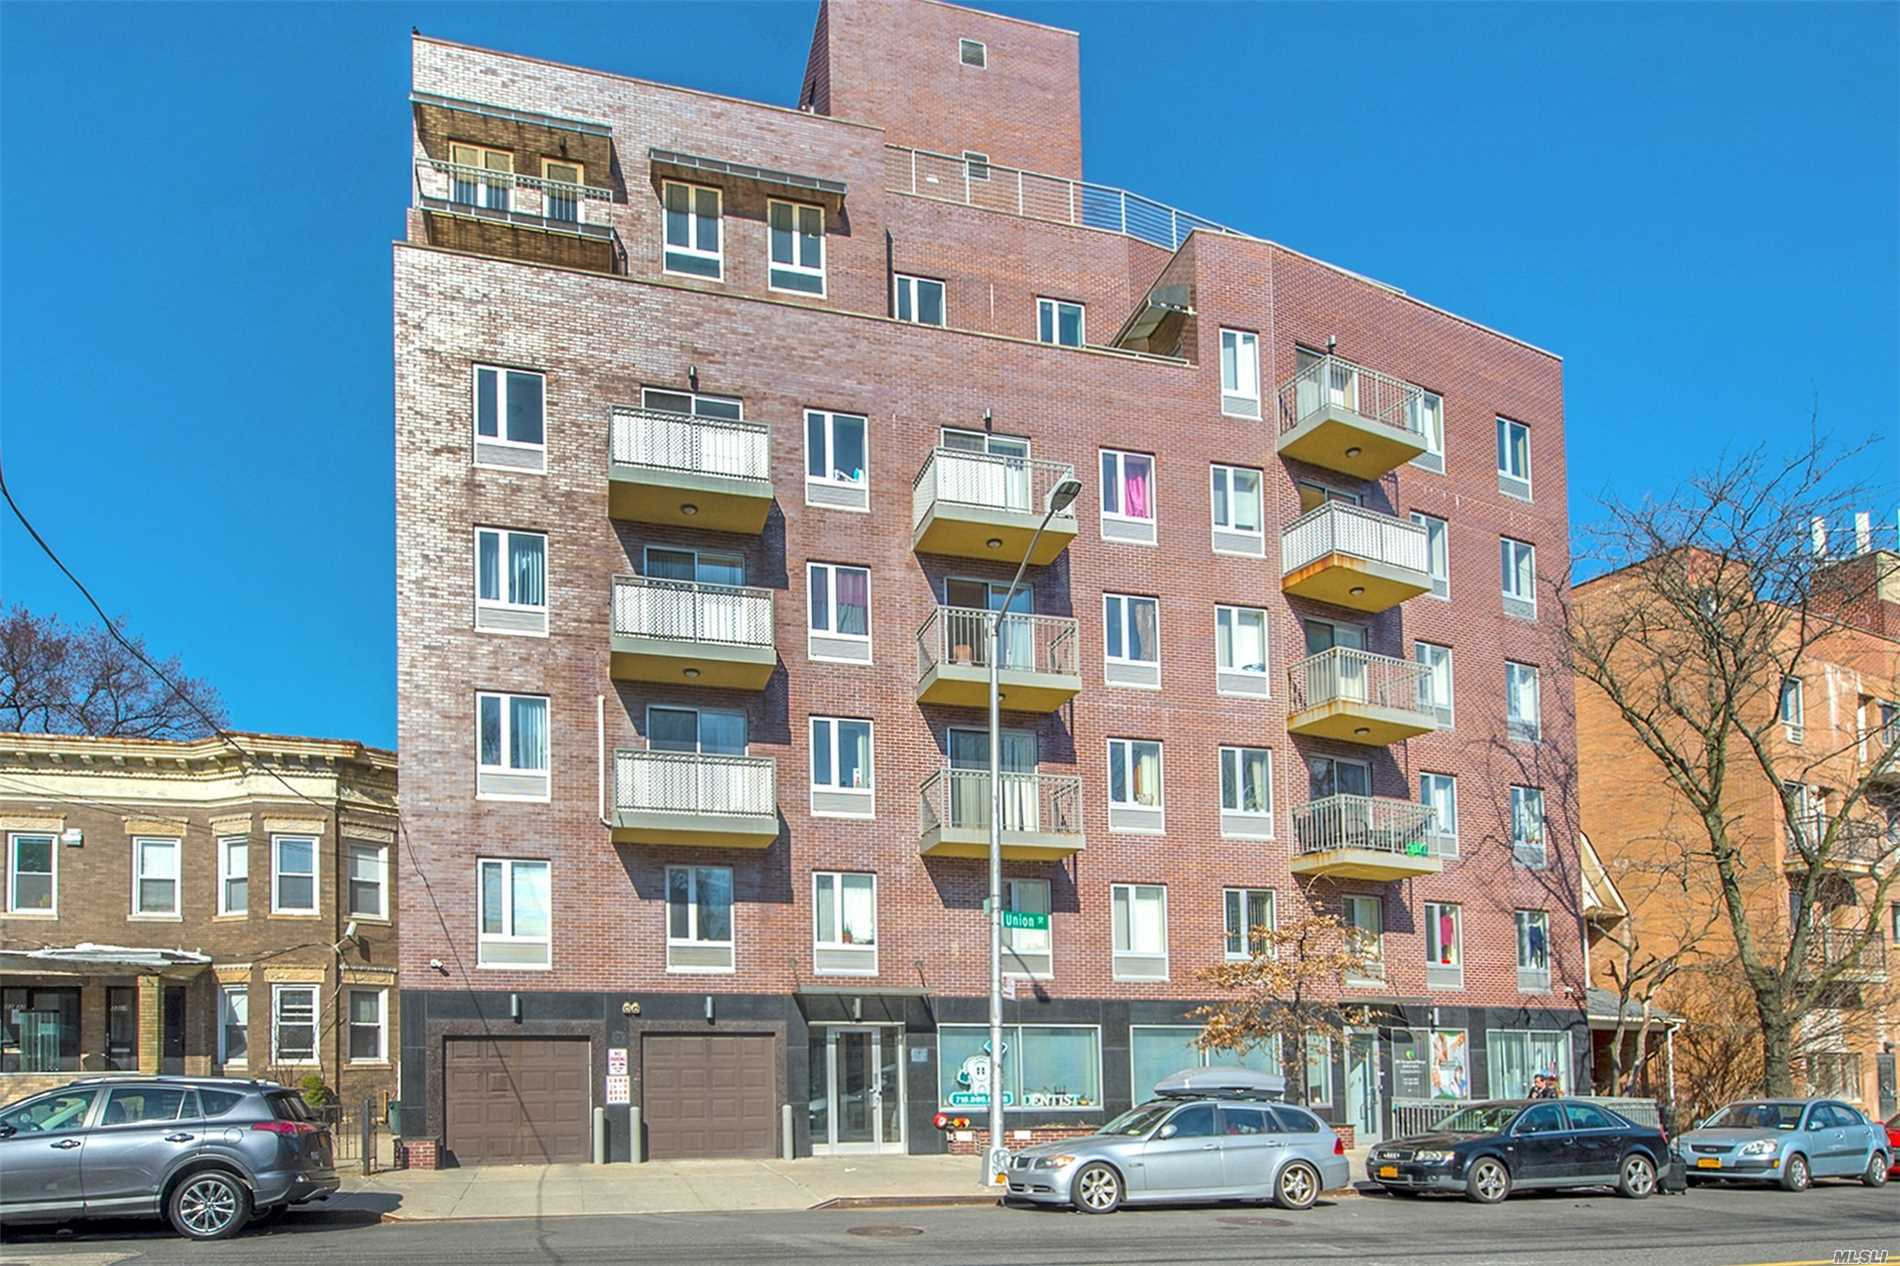 Sale May Be Subject To Term & Conditions Of An Offering Plan. 3Brs 2 Bath With Terrace, Stainless Steel Appliances Washer And Dryer Installed In Unit, Lower Property Tax And Common Charge, 7 Years Remaining Tax Abatement, 10 Minutes Walking Distance To Main St., 7 Train. Close To Supermarket, Buses, Library, Park & School, Great For Living & Investment.